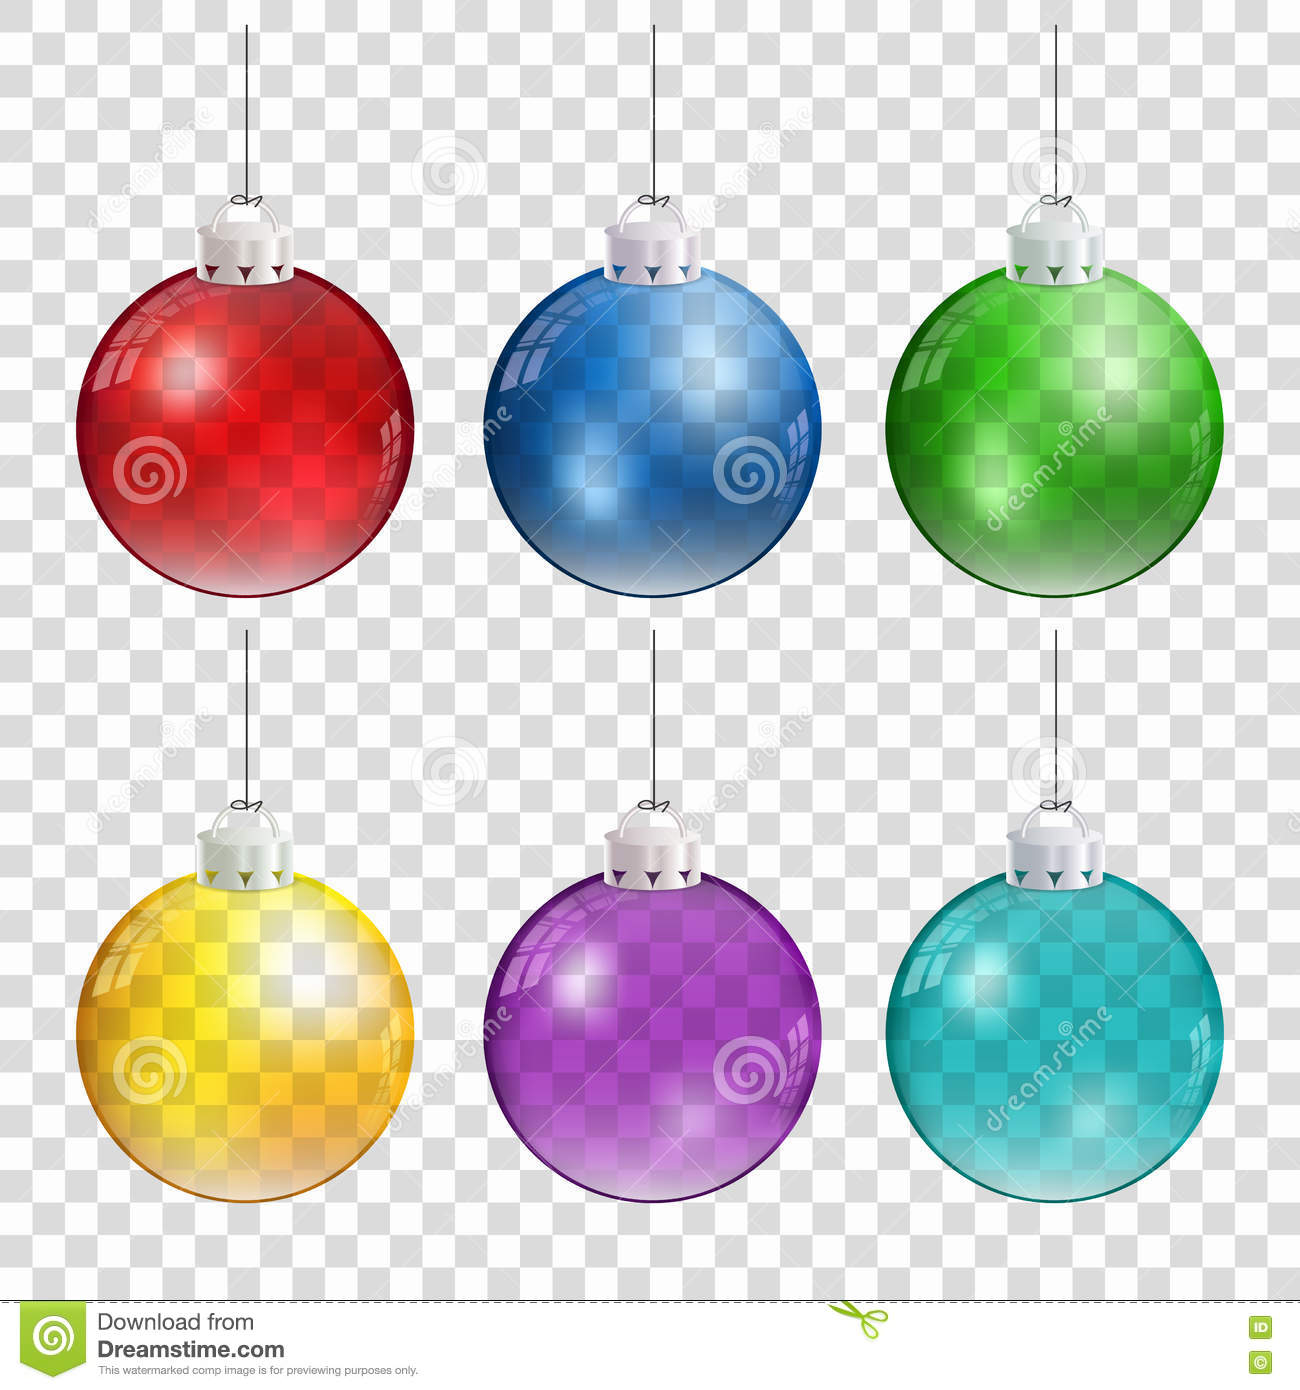 Realistic Christmas balls in different colors hanging on transparent background.